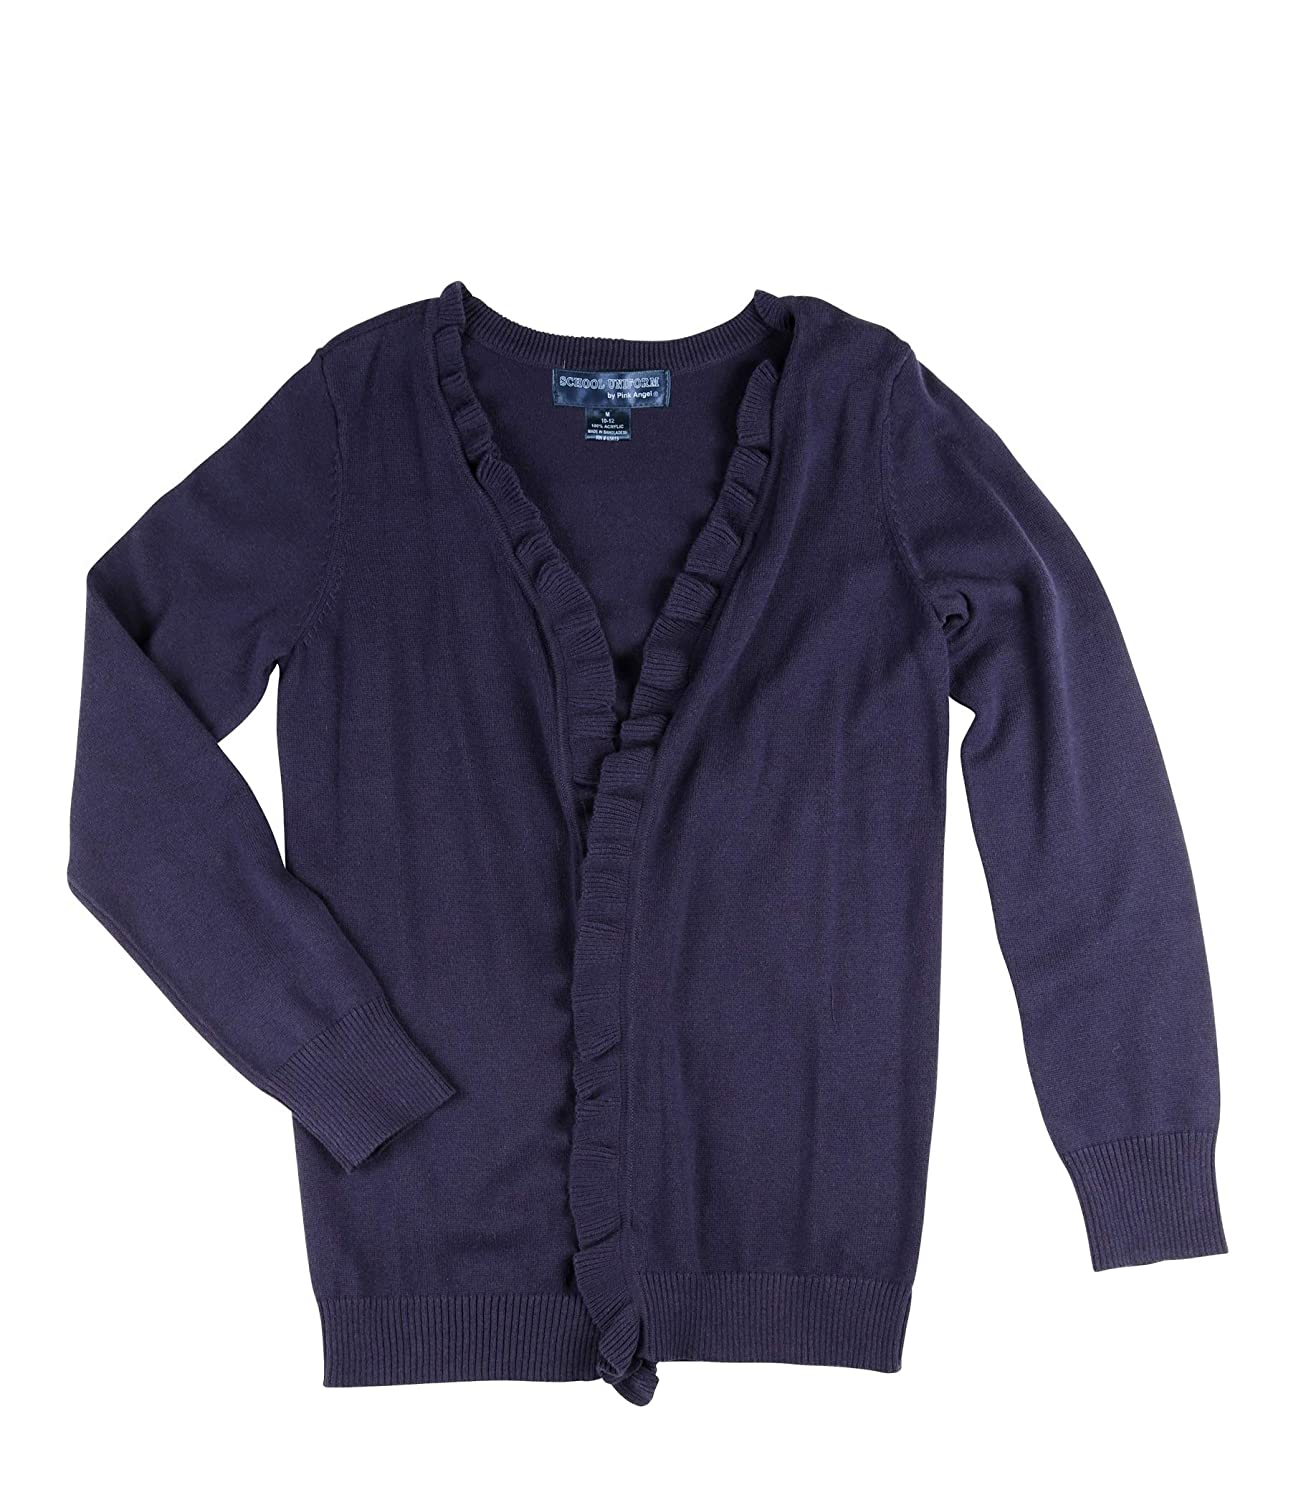 Girls Ruffled Placket Open Cardigan School Uniform Sweater